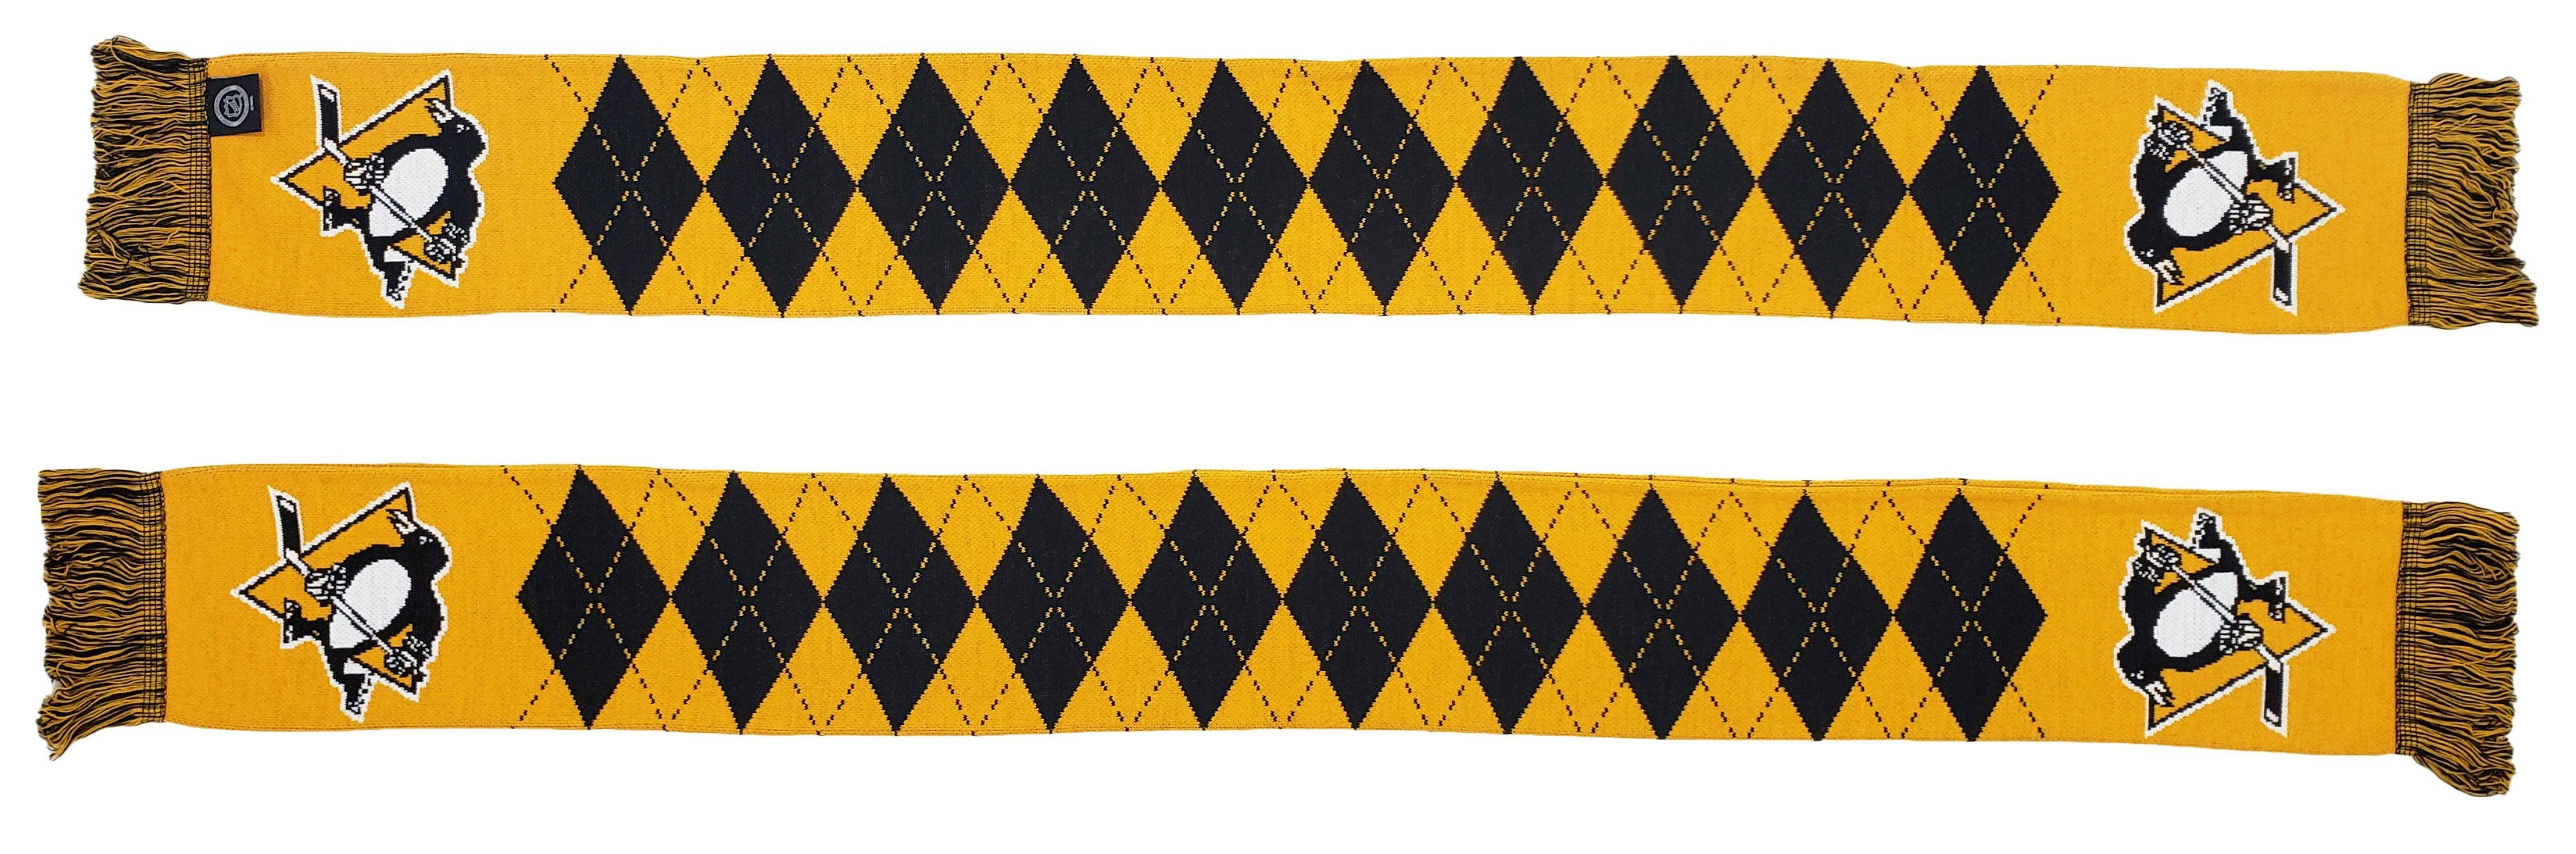 PITTSBURGH PENGUINS SCARF - Argyle